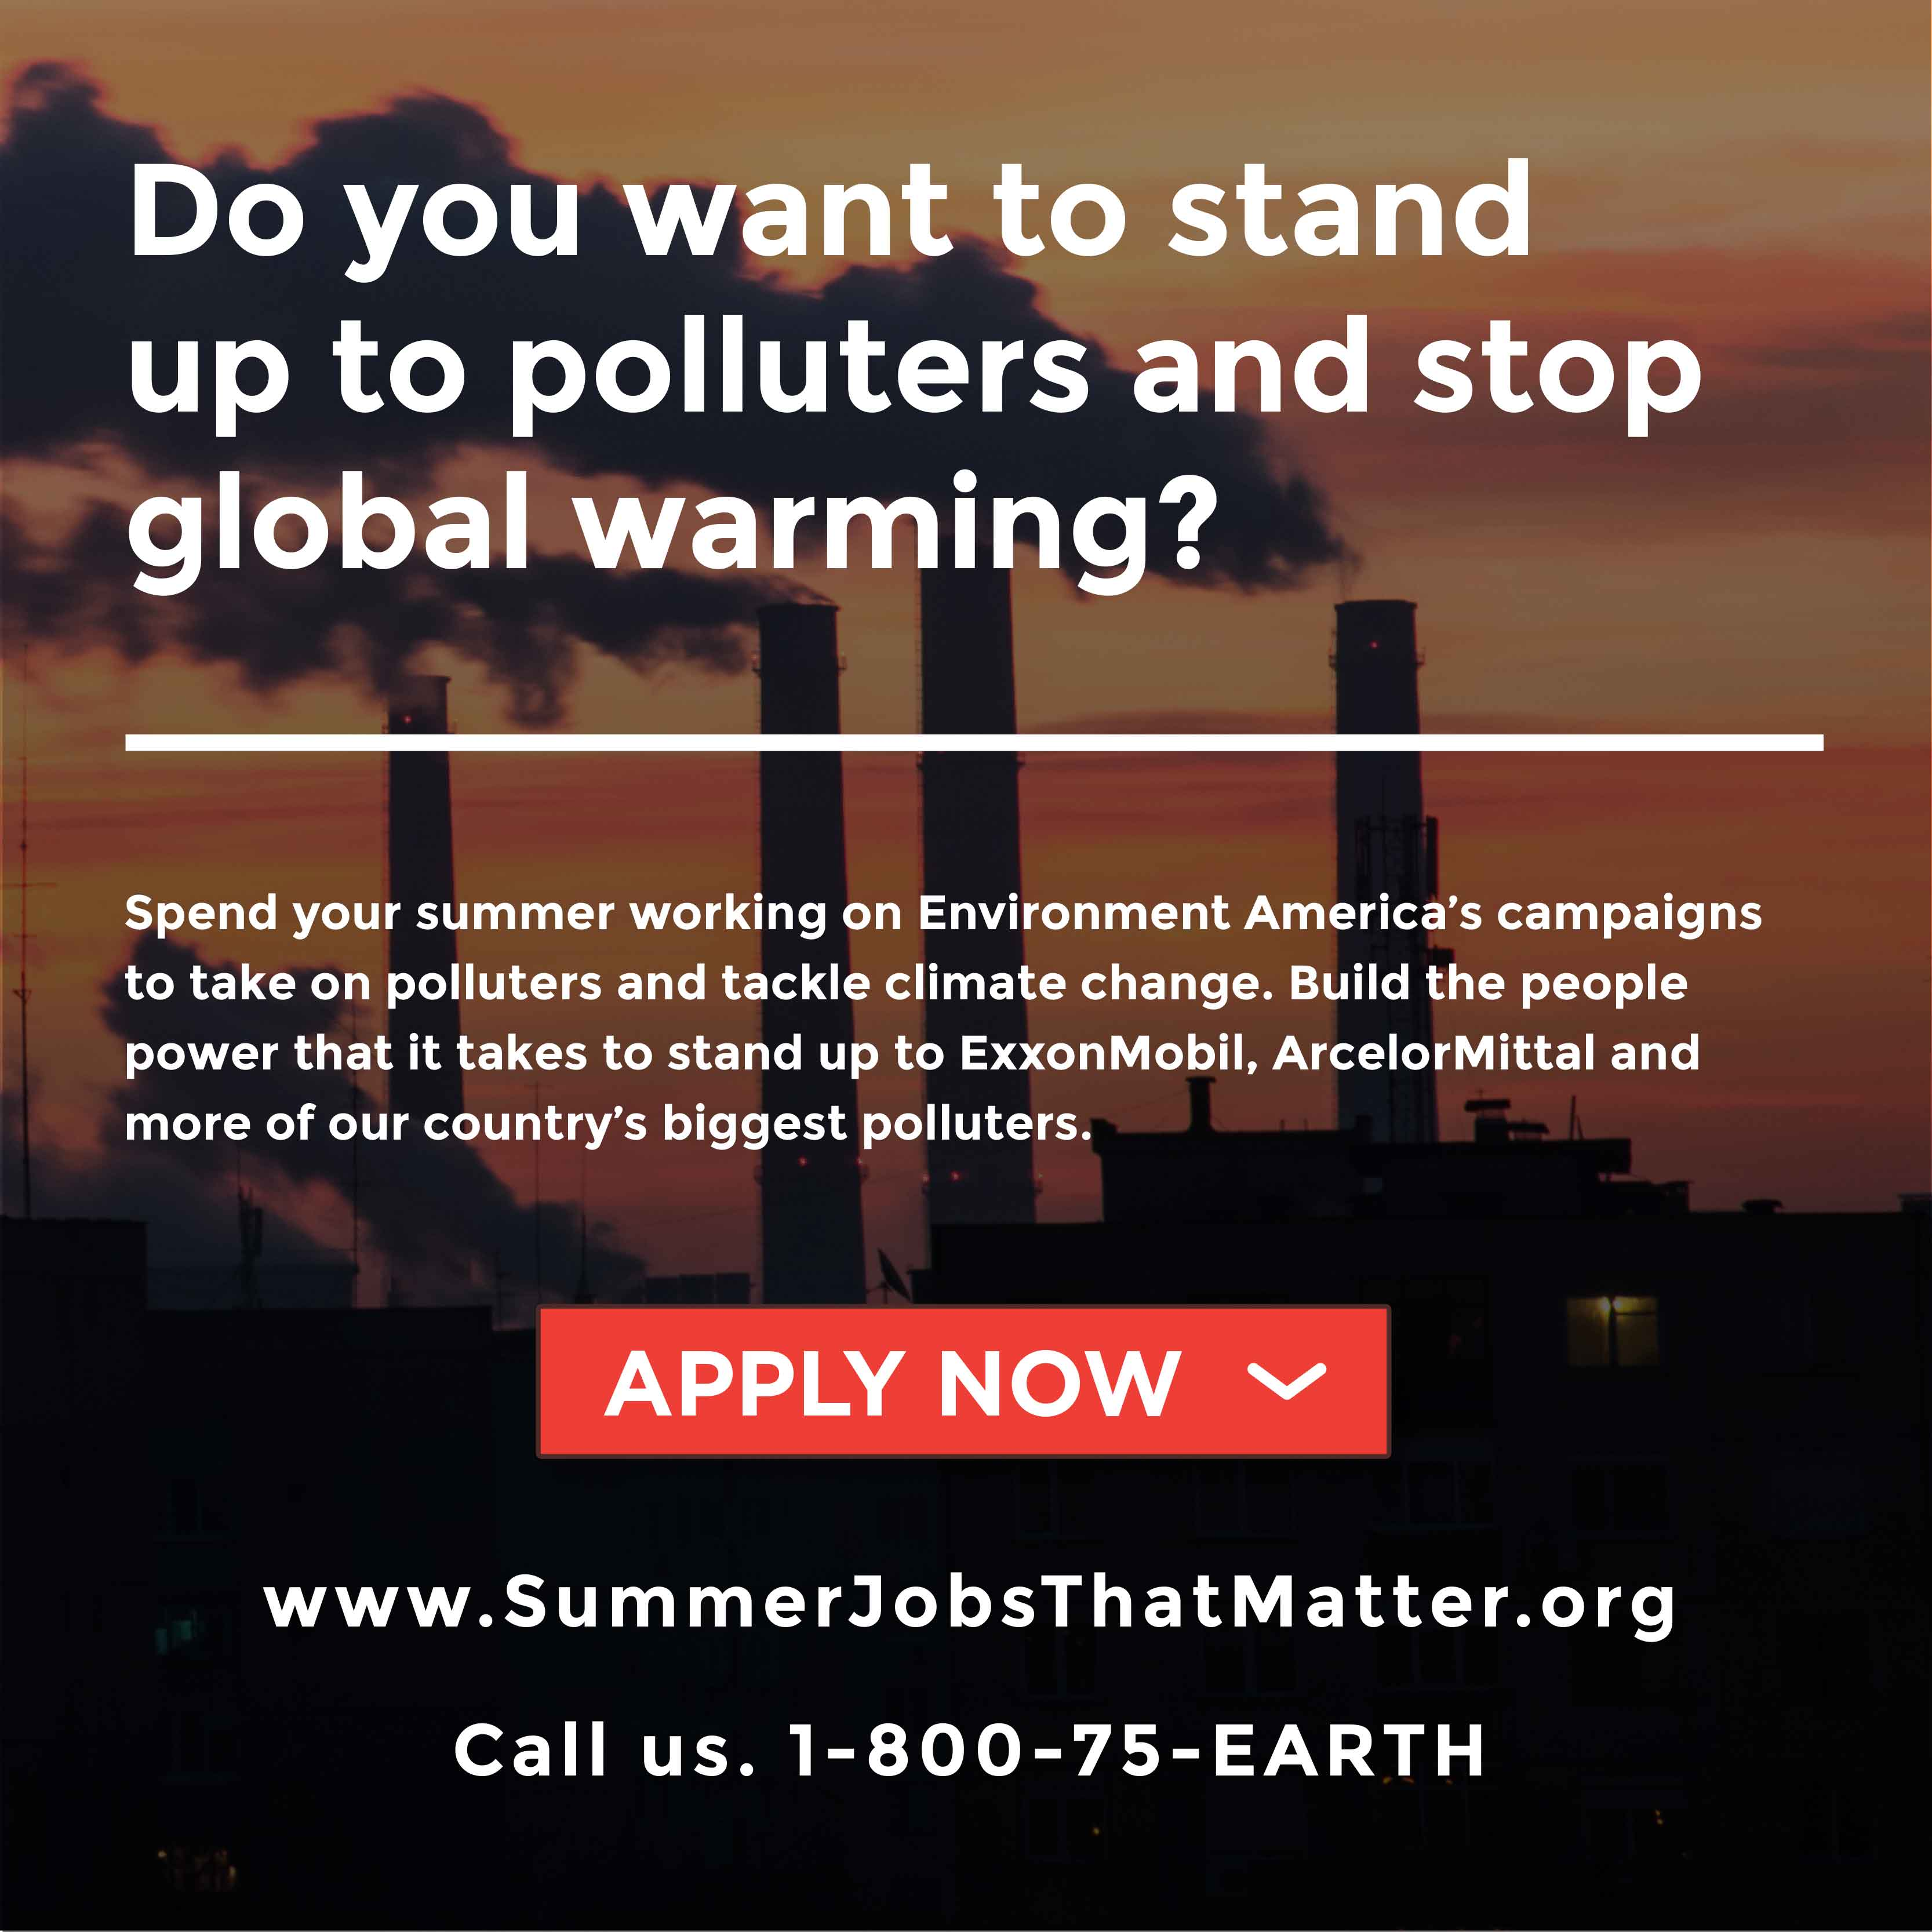 Do you want to stand up to polluters and stop global warming?